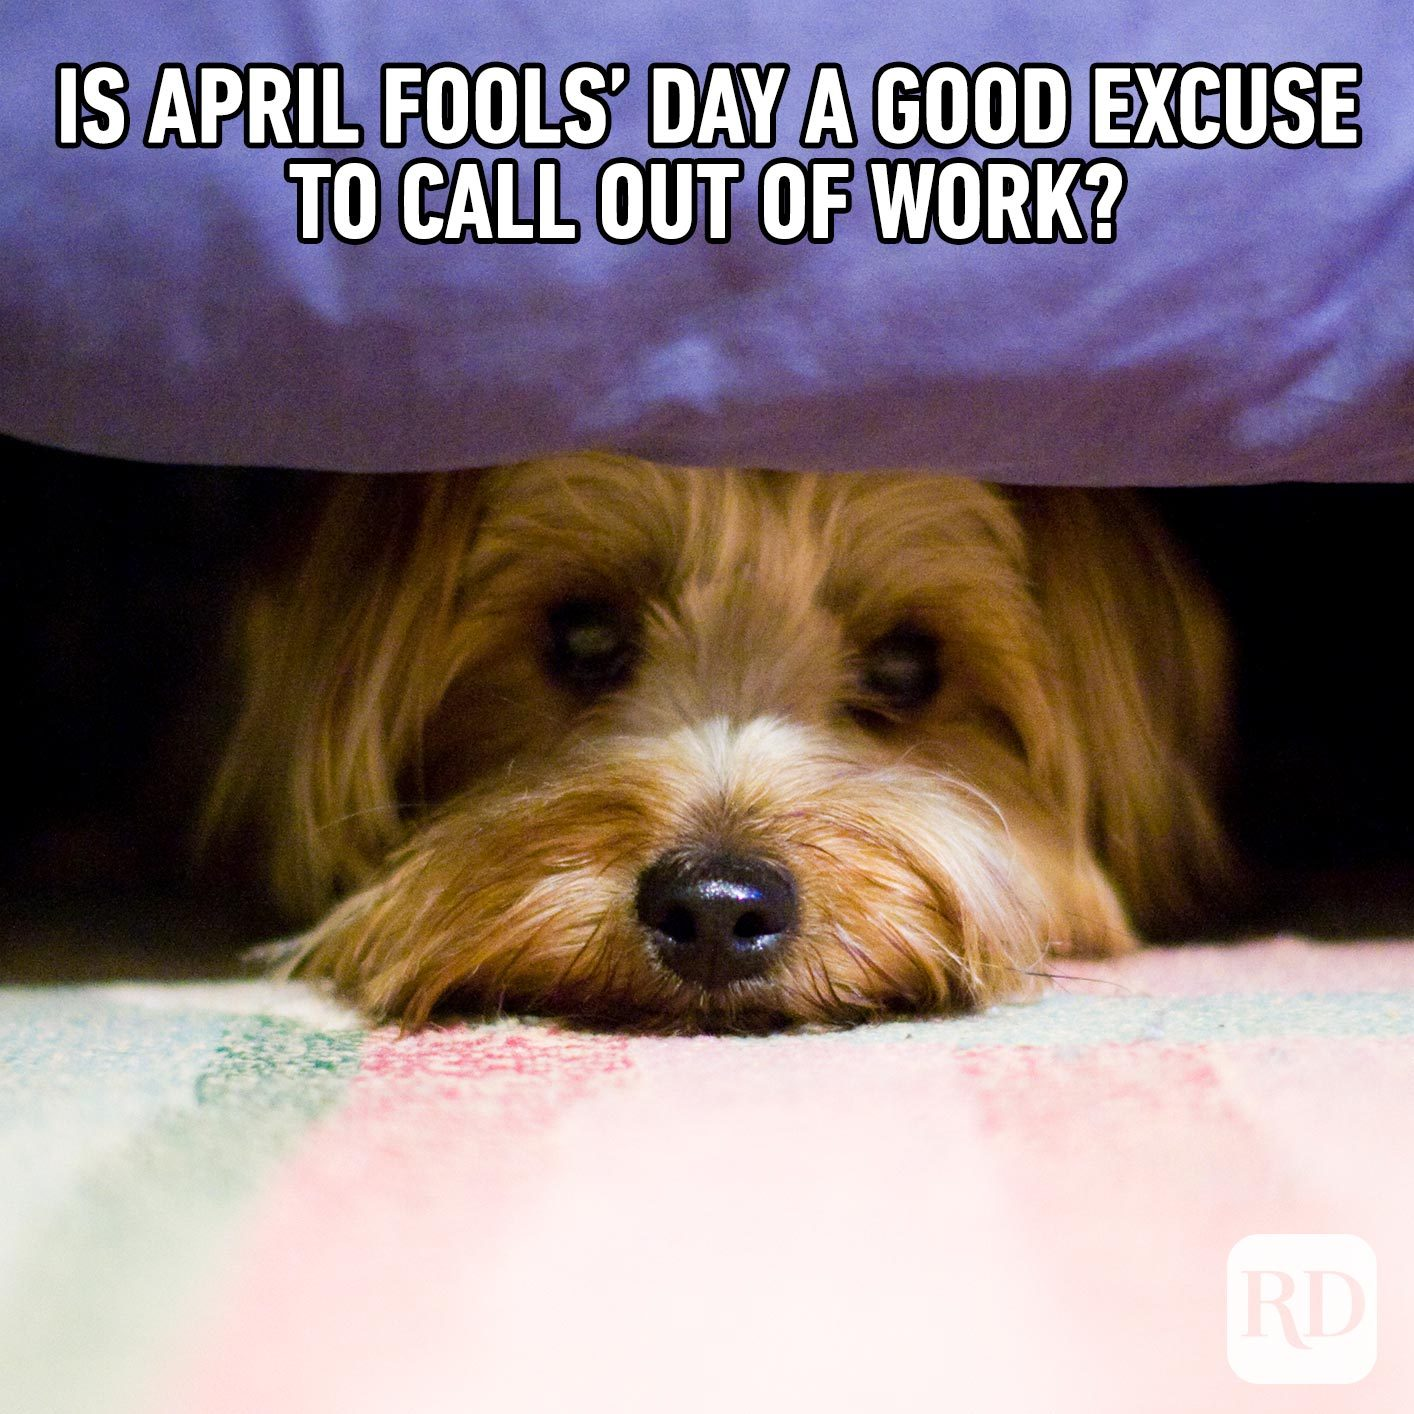 Dog hiding under a bed. Meme text: Is April Fools' day a good excuse to call out of work?